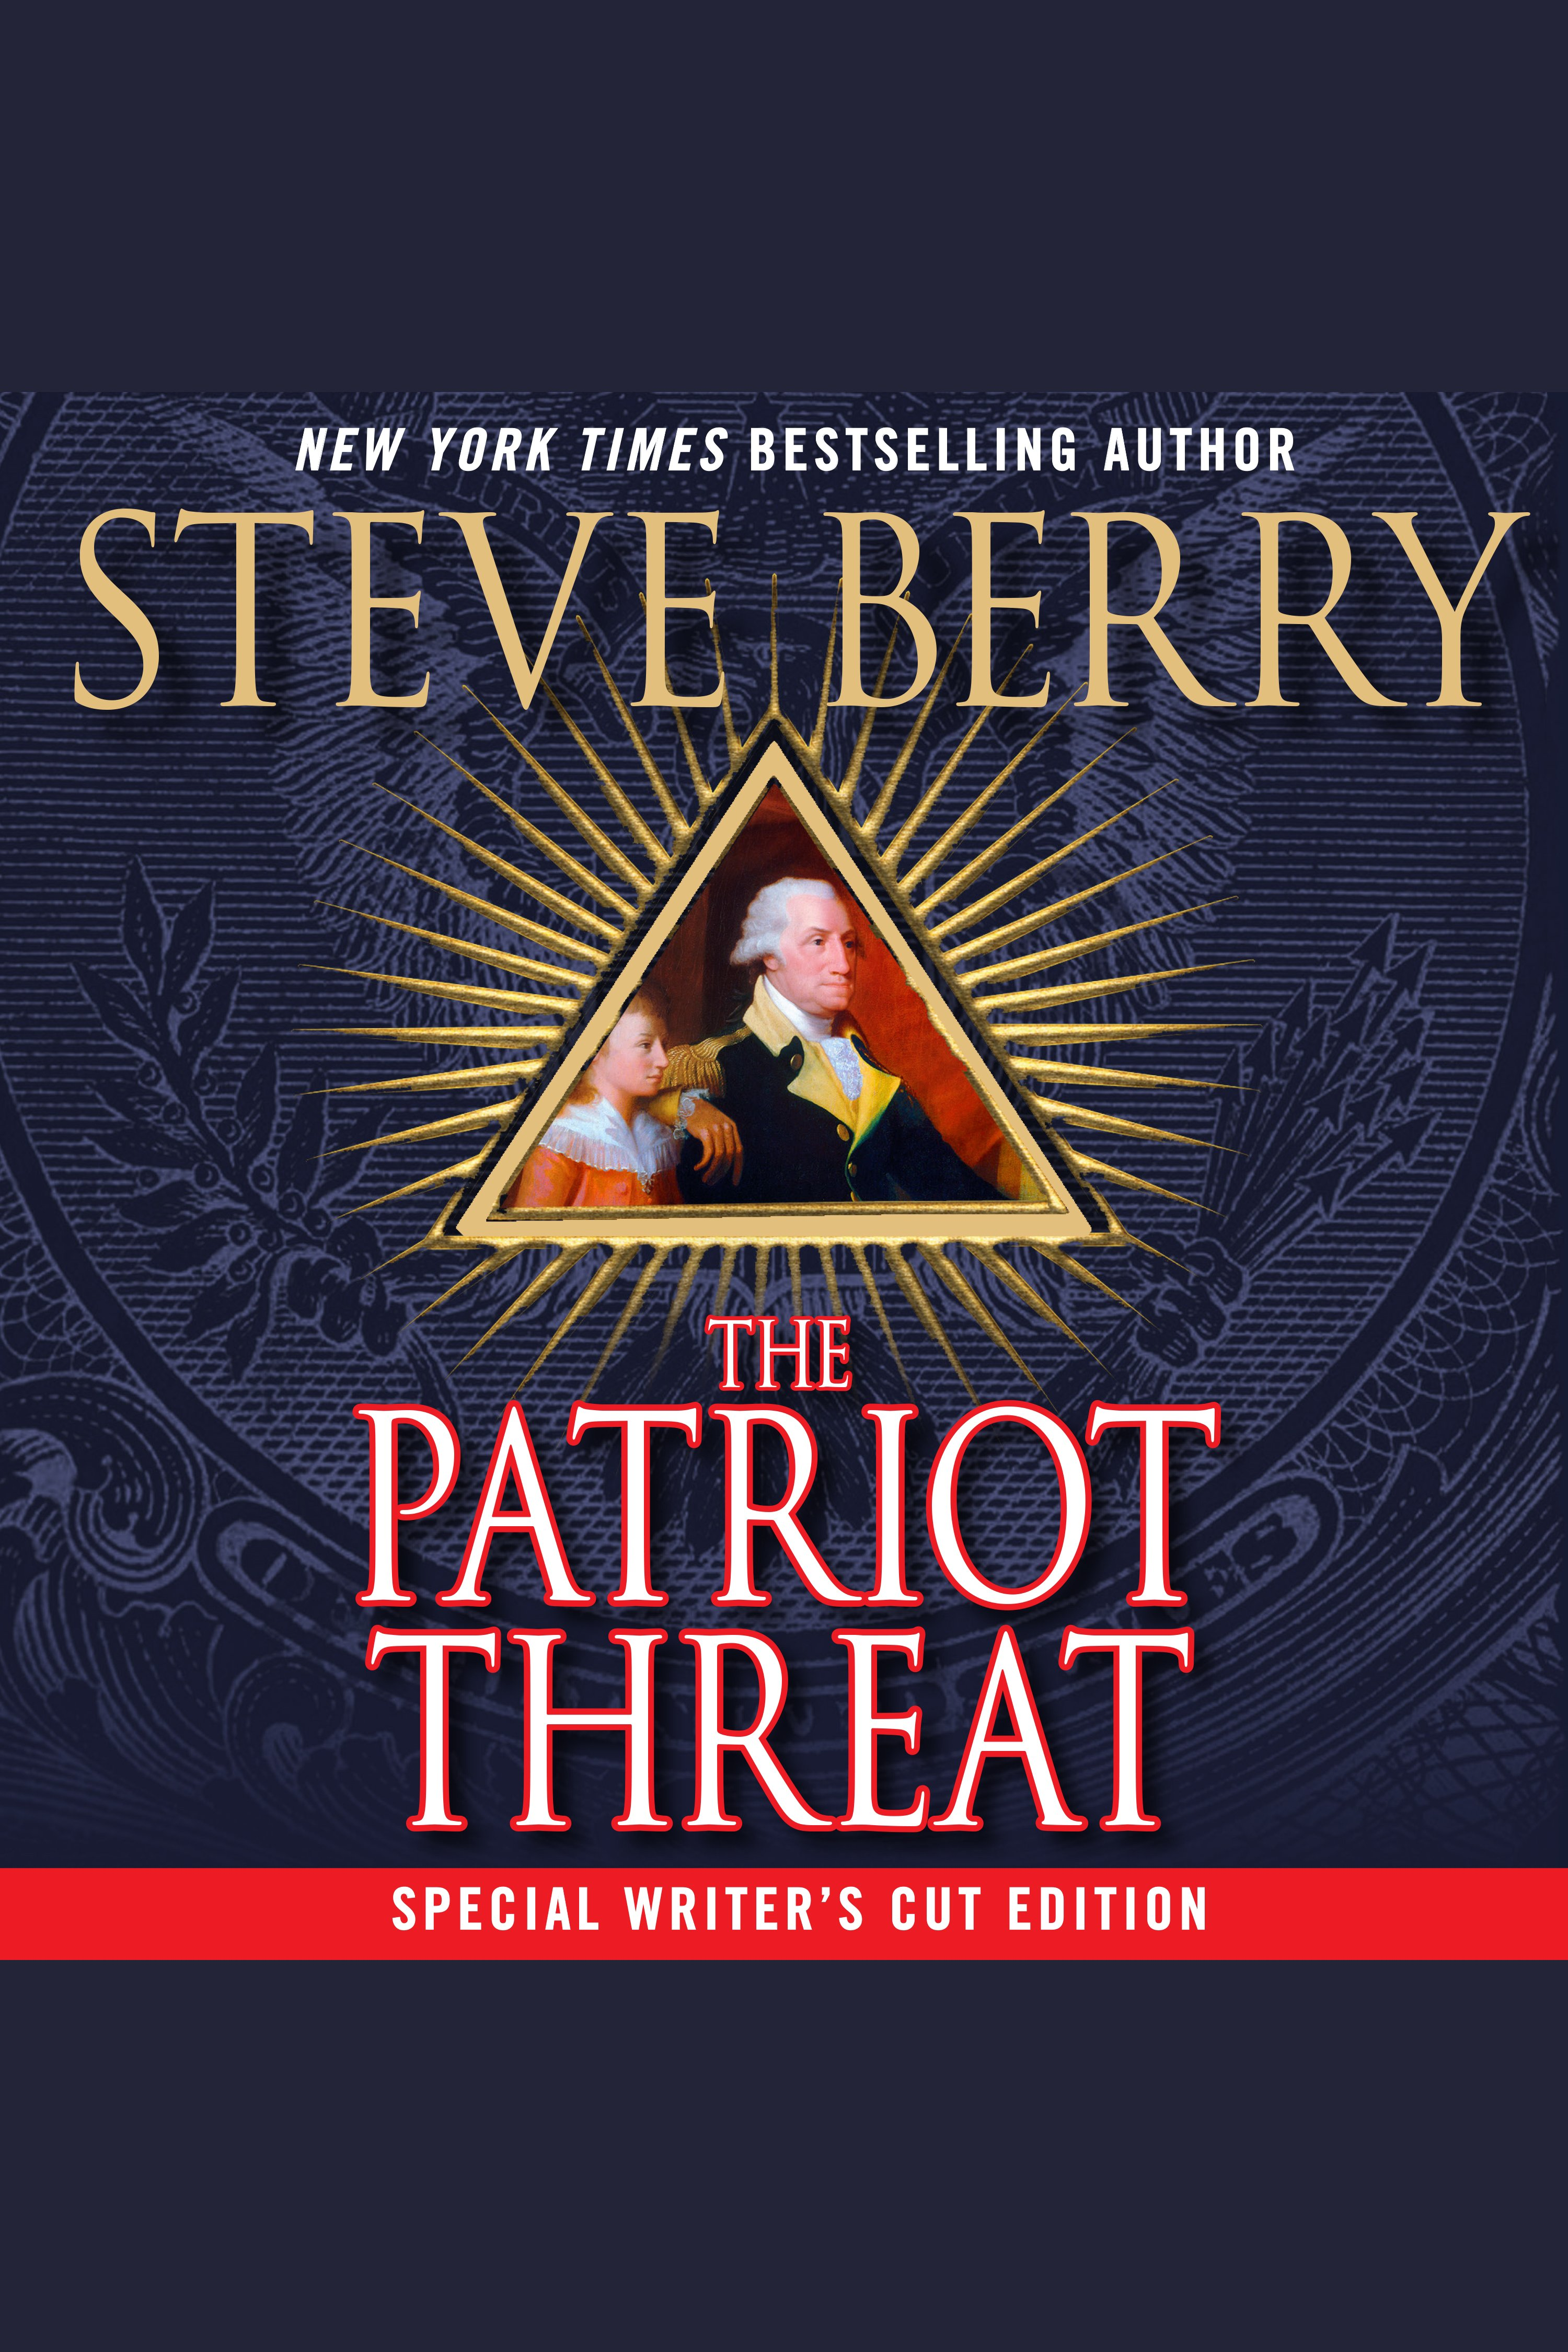 The patriot threat cover image